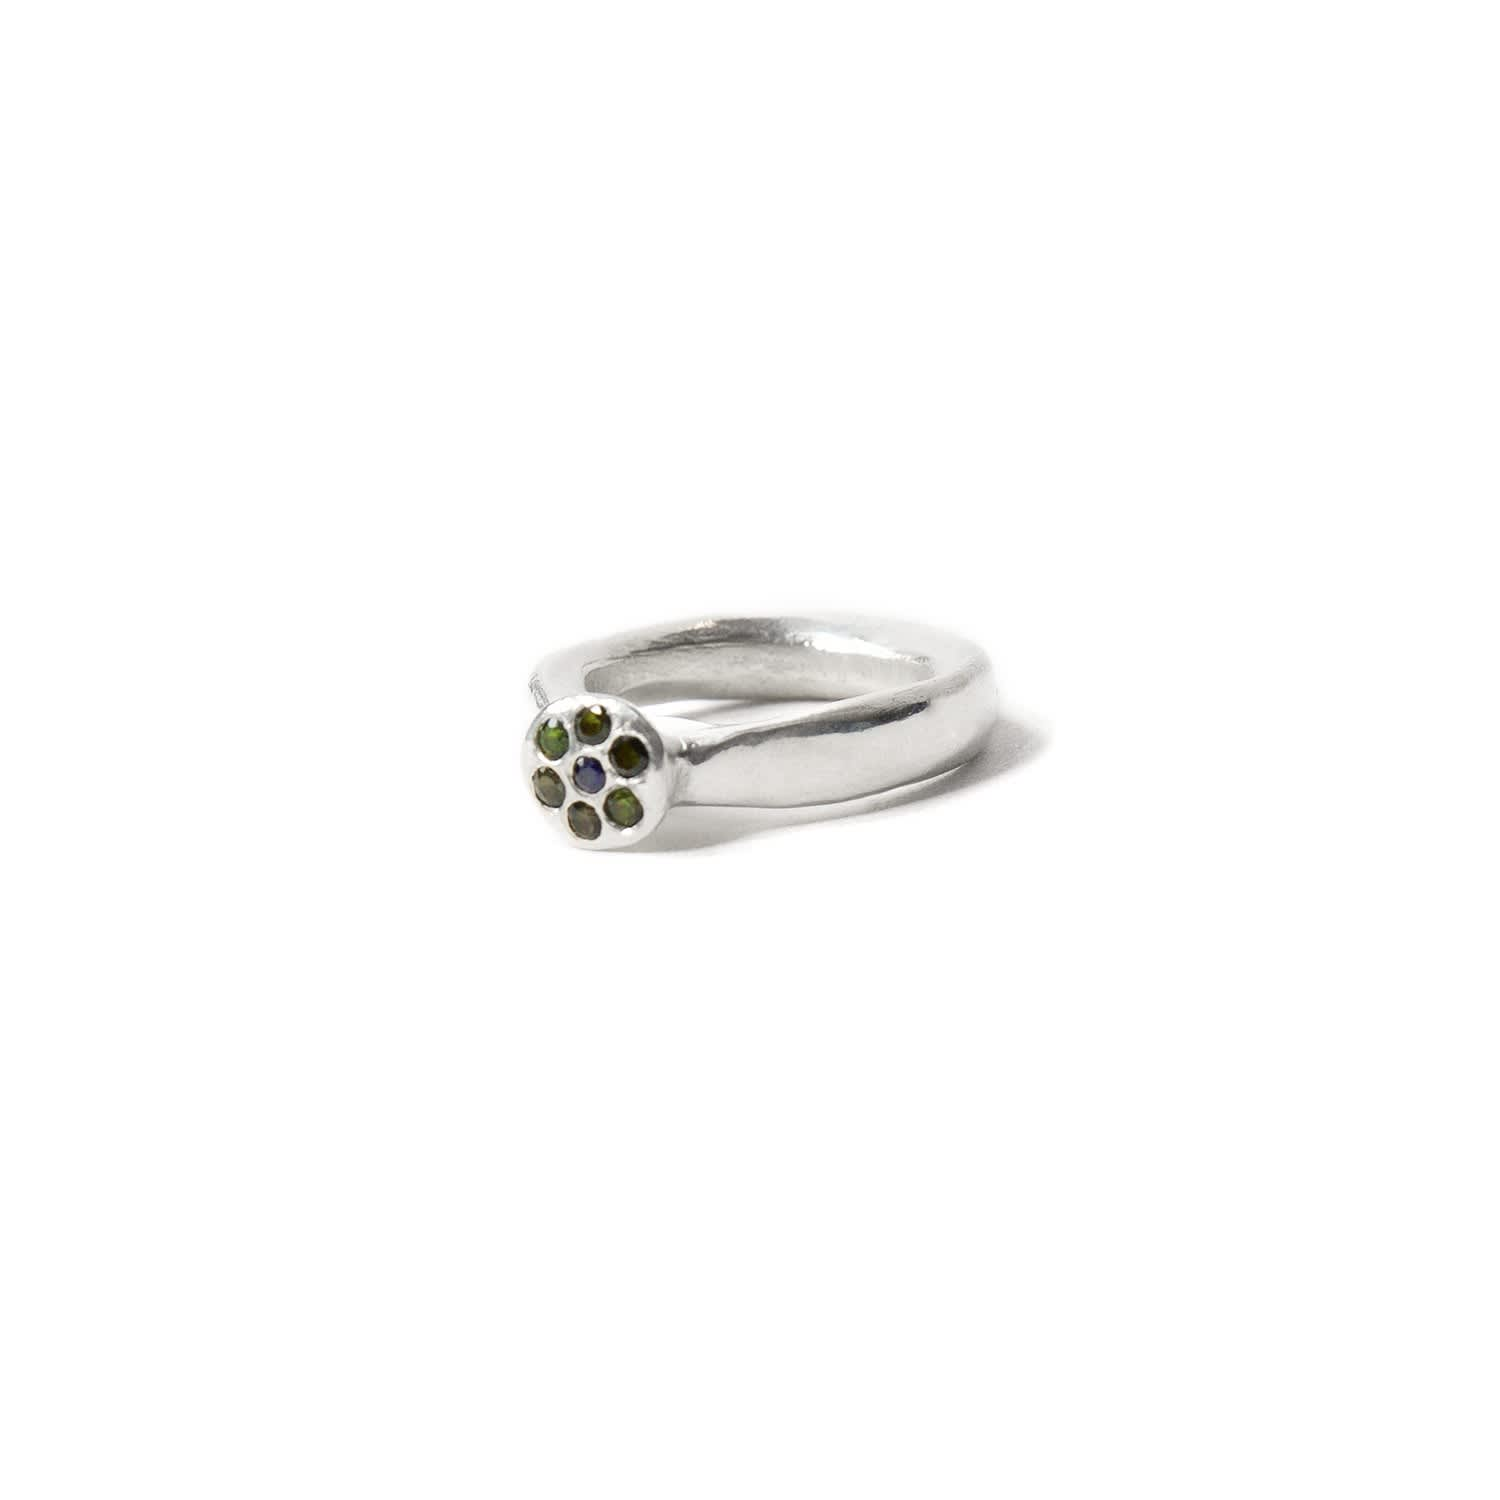 Daisy flower ring lyla maria wolf badger daisy flower ring image izmirmasajfo Image collections